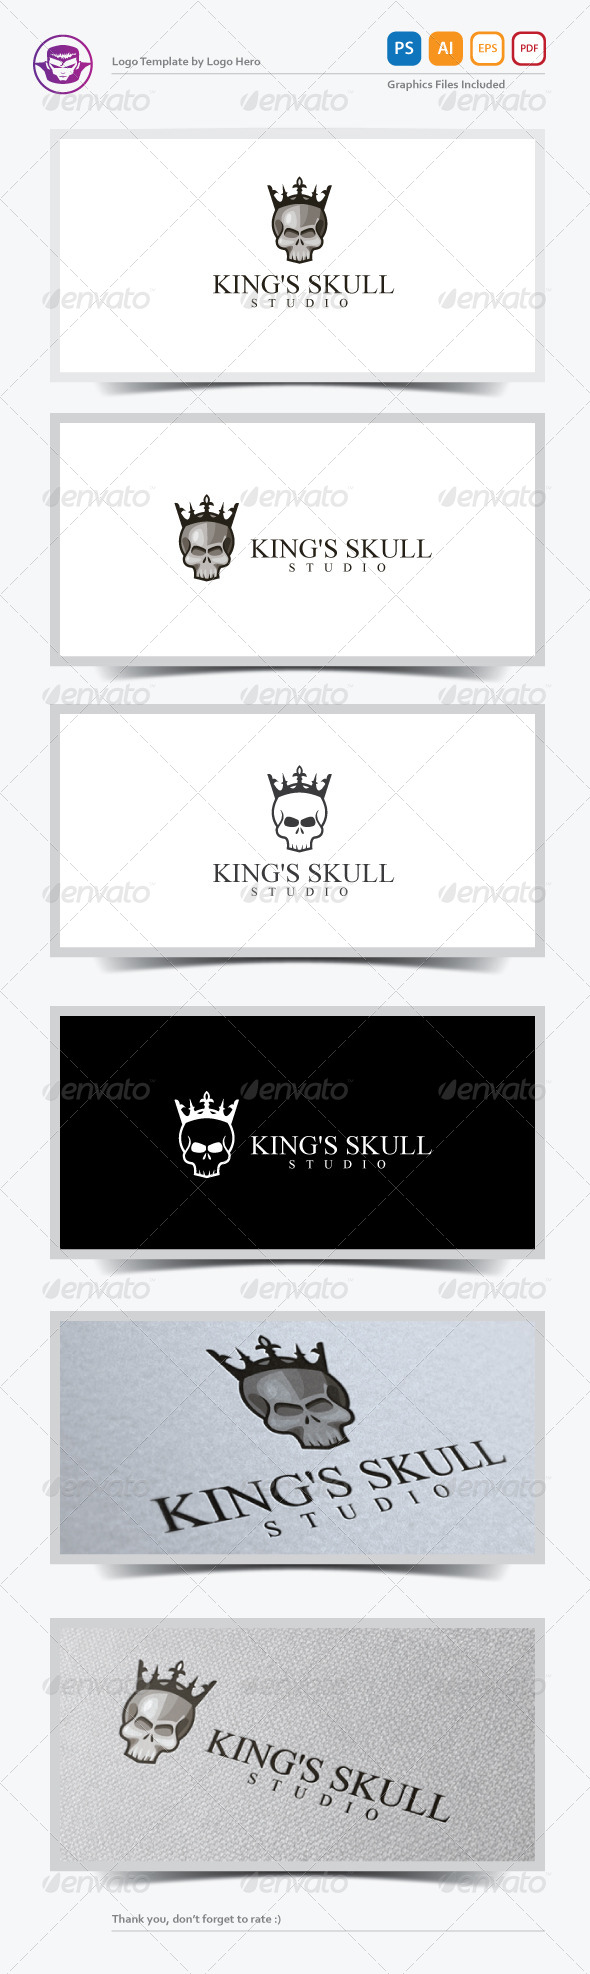 GraphicRiver King s Skull Logo Template 7431572